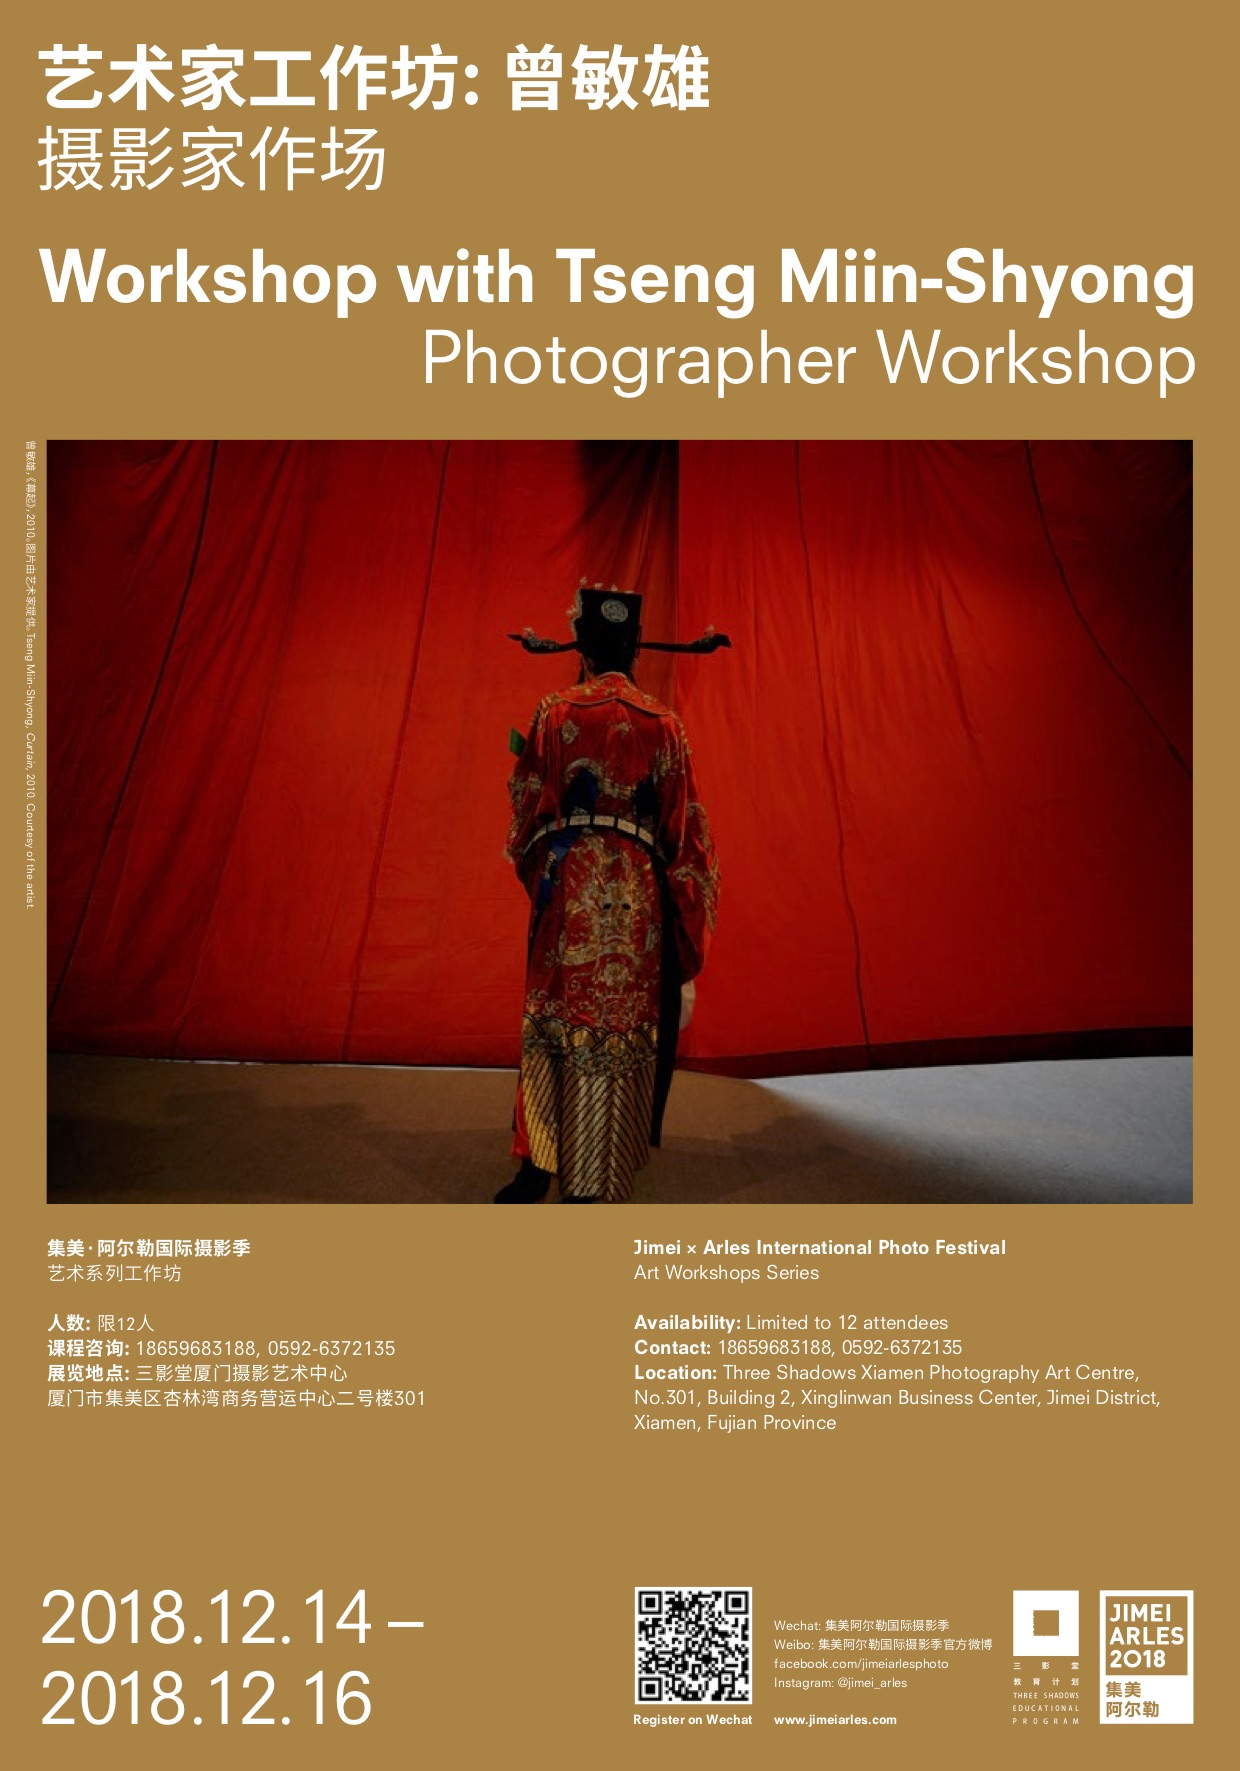 JIMEIARLES_Workshop Poster_Digital_Tseng_Miin_Shyong.jpg